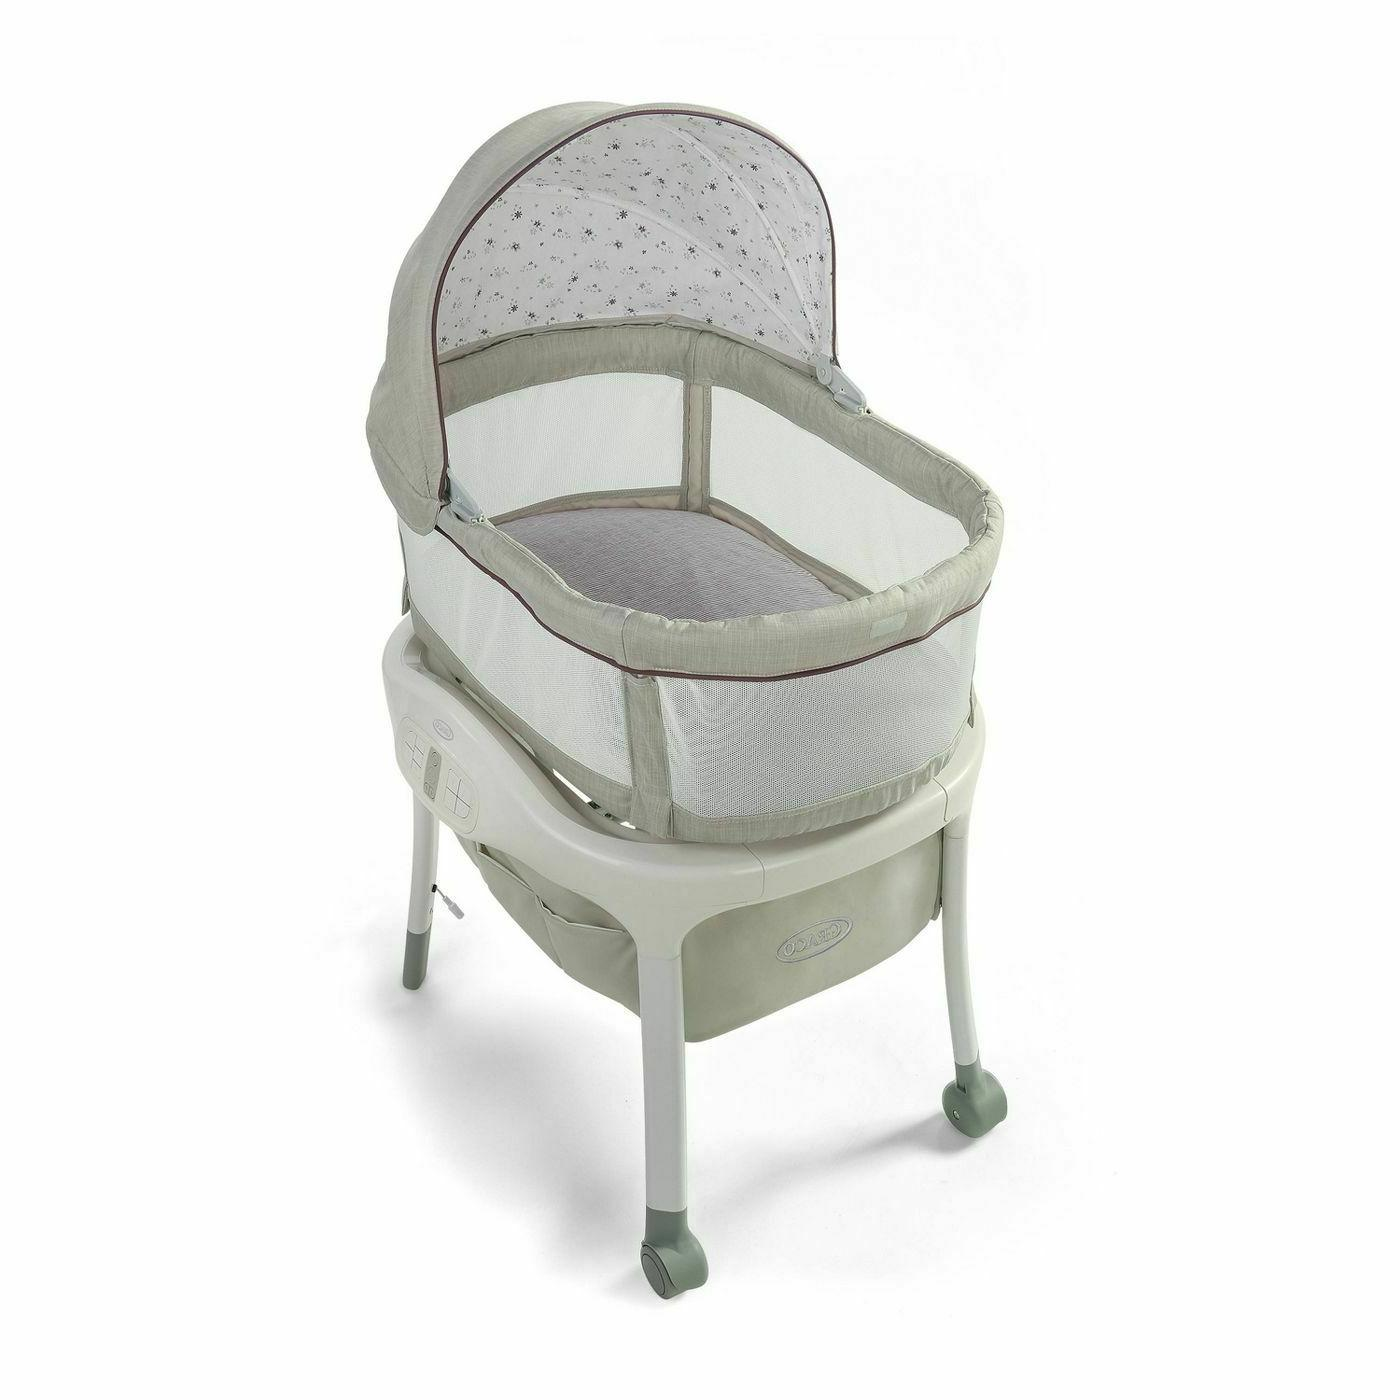 NEW Graco with Cry Detection Technology, Roma